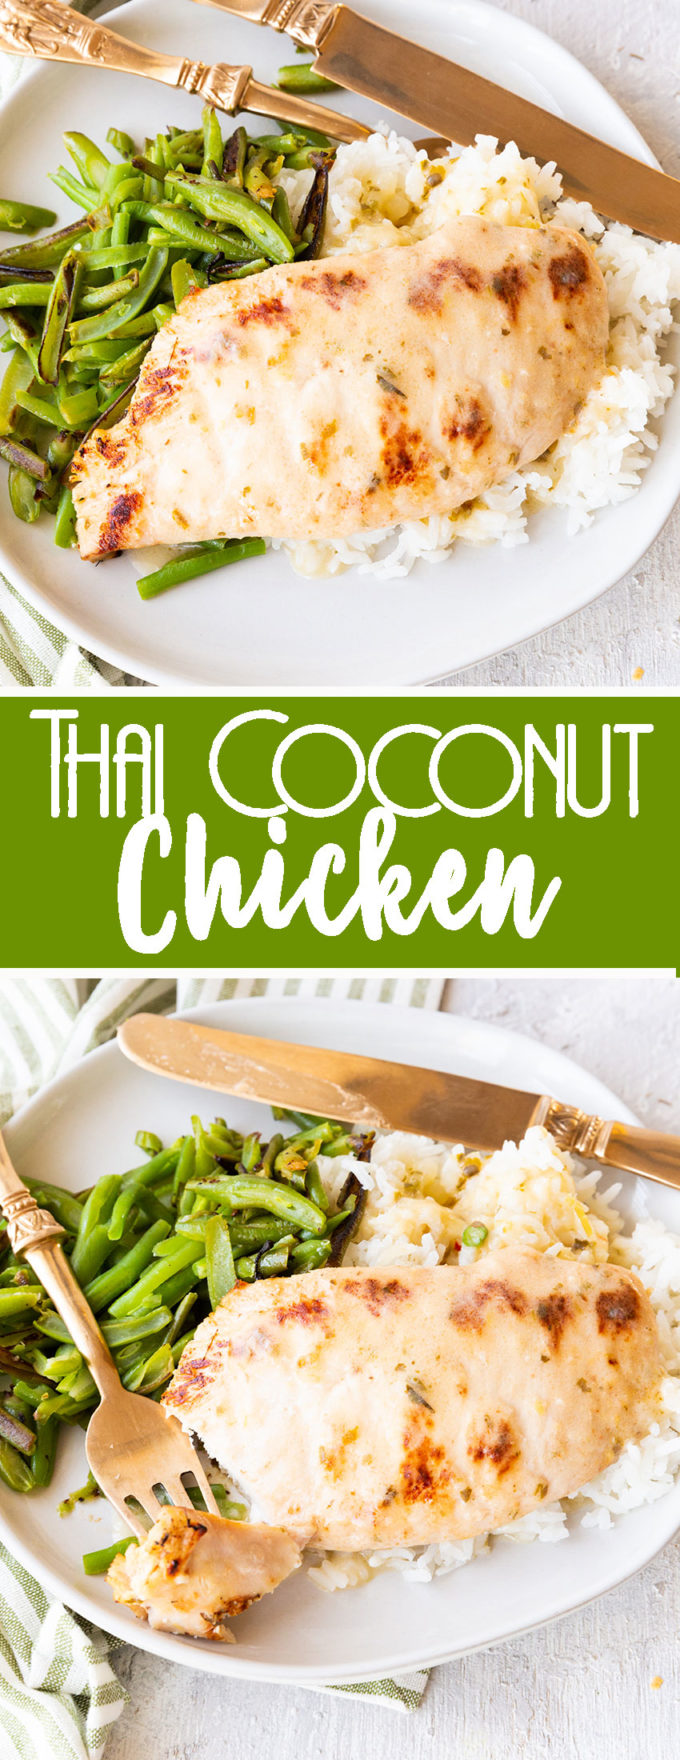 Thai coconut chicken served over rice with green beans.